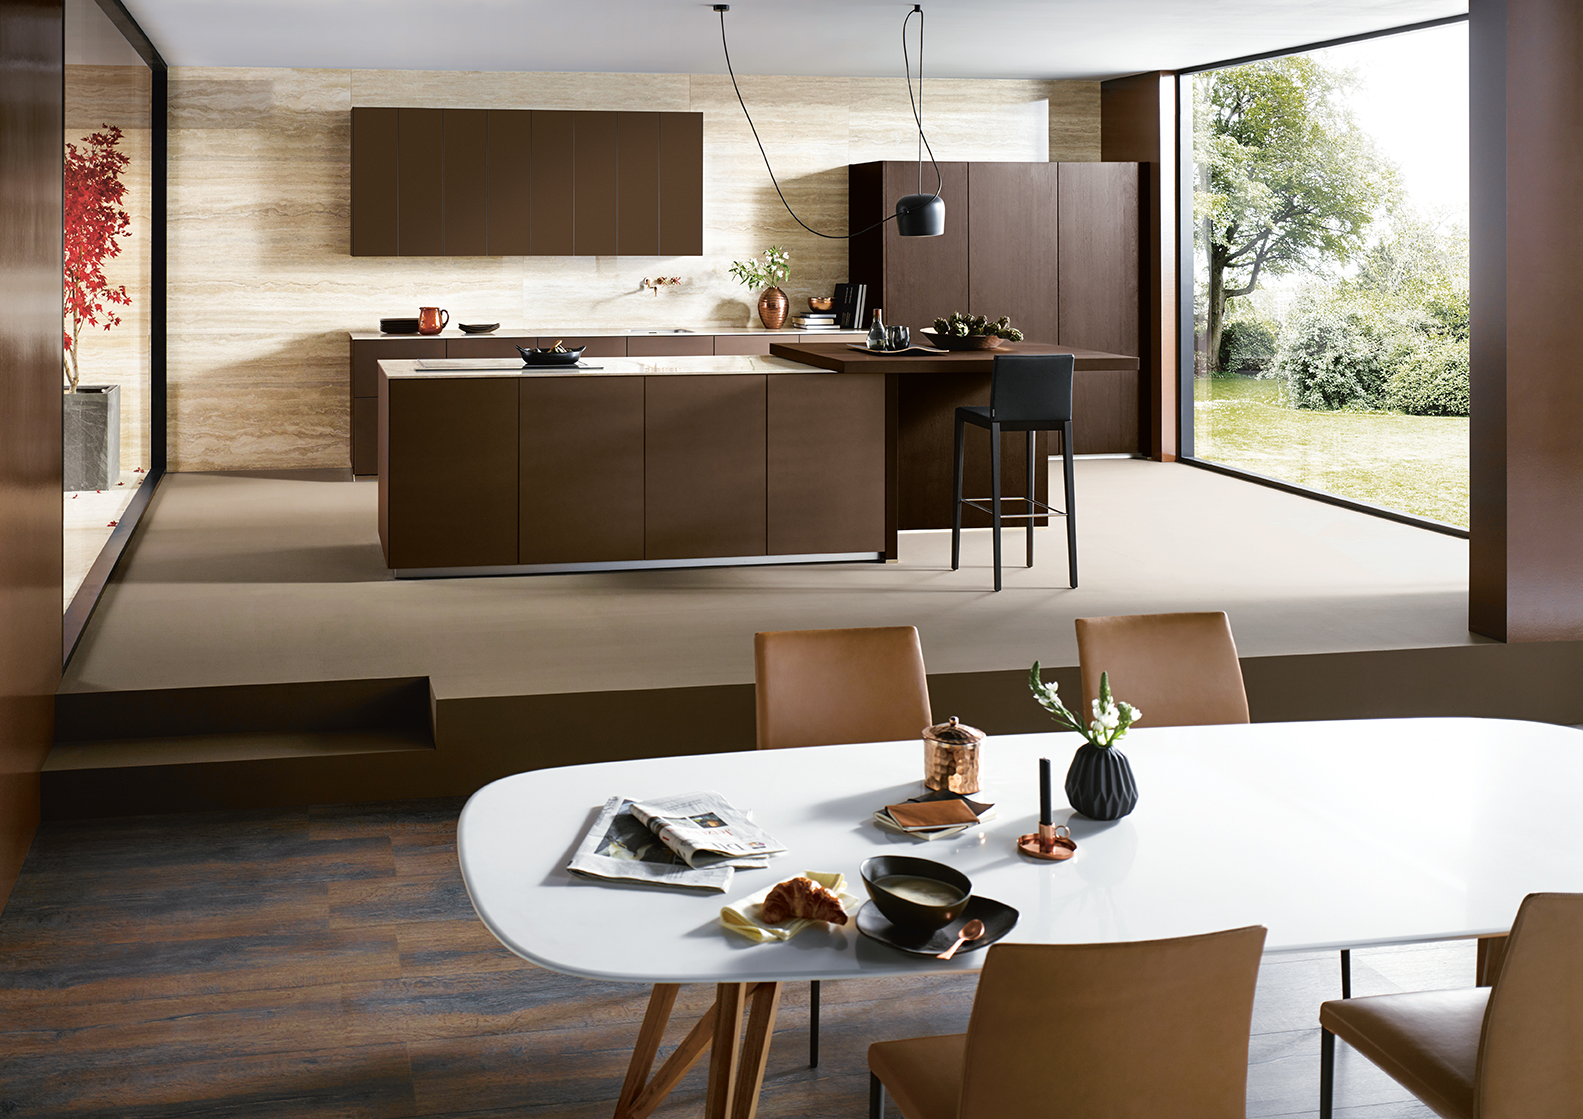 Luxury German Kitchens in Cardiff - blog - family Kitchen